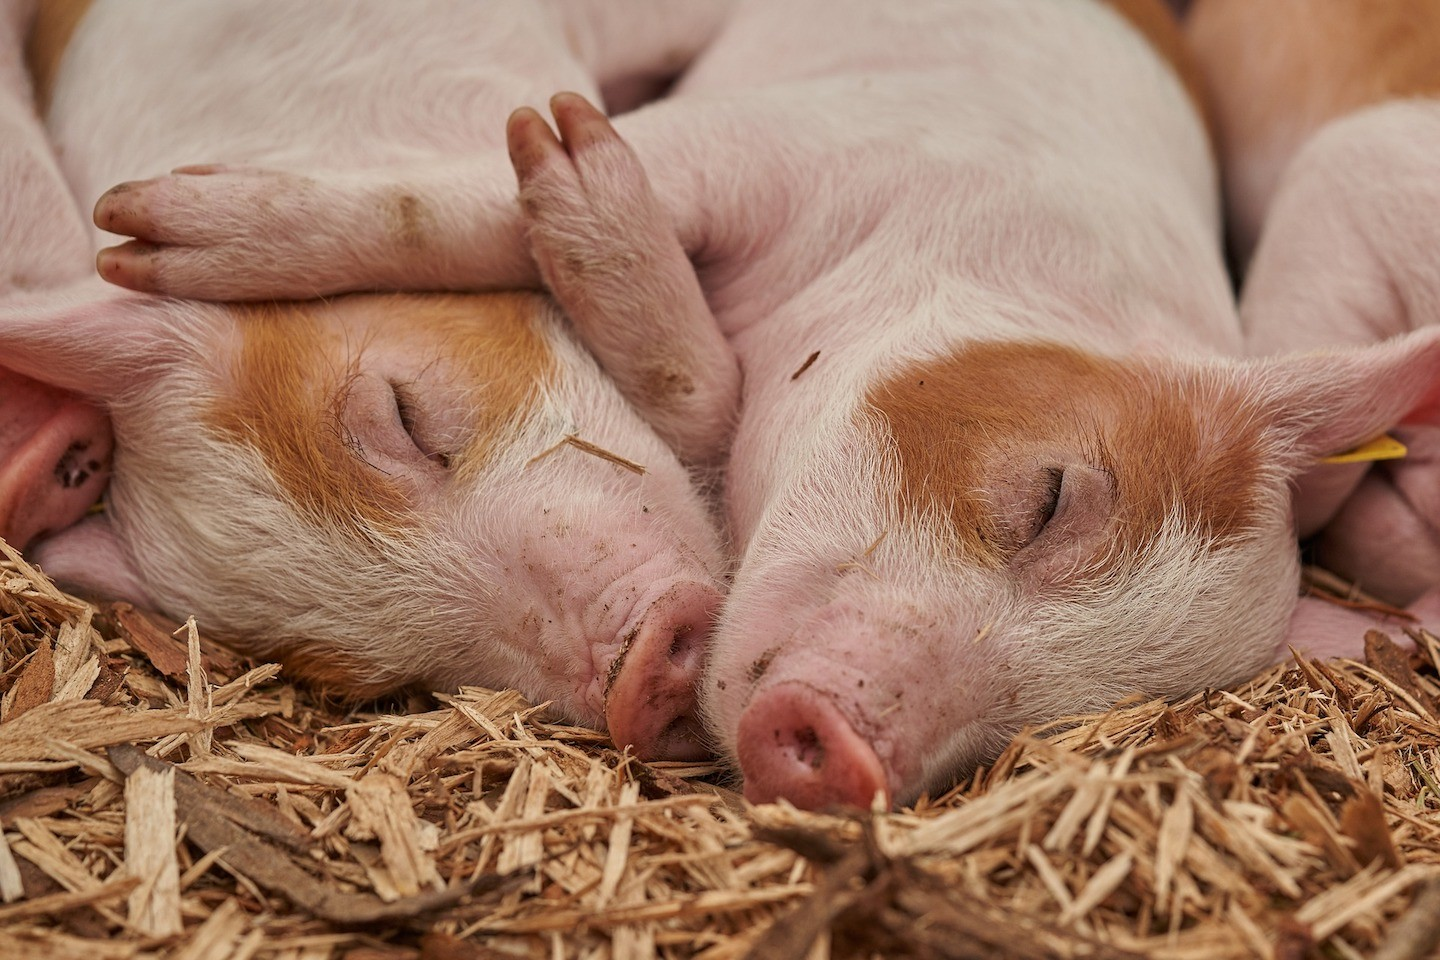 Piglets napping